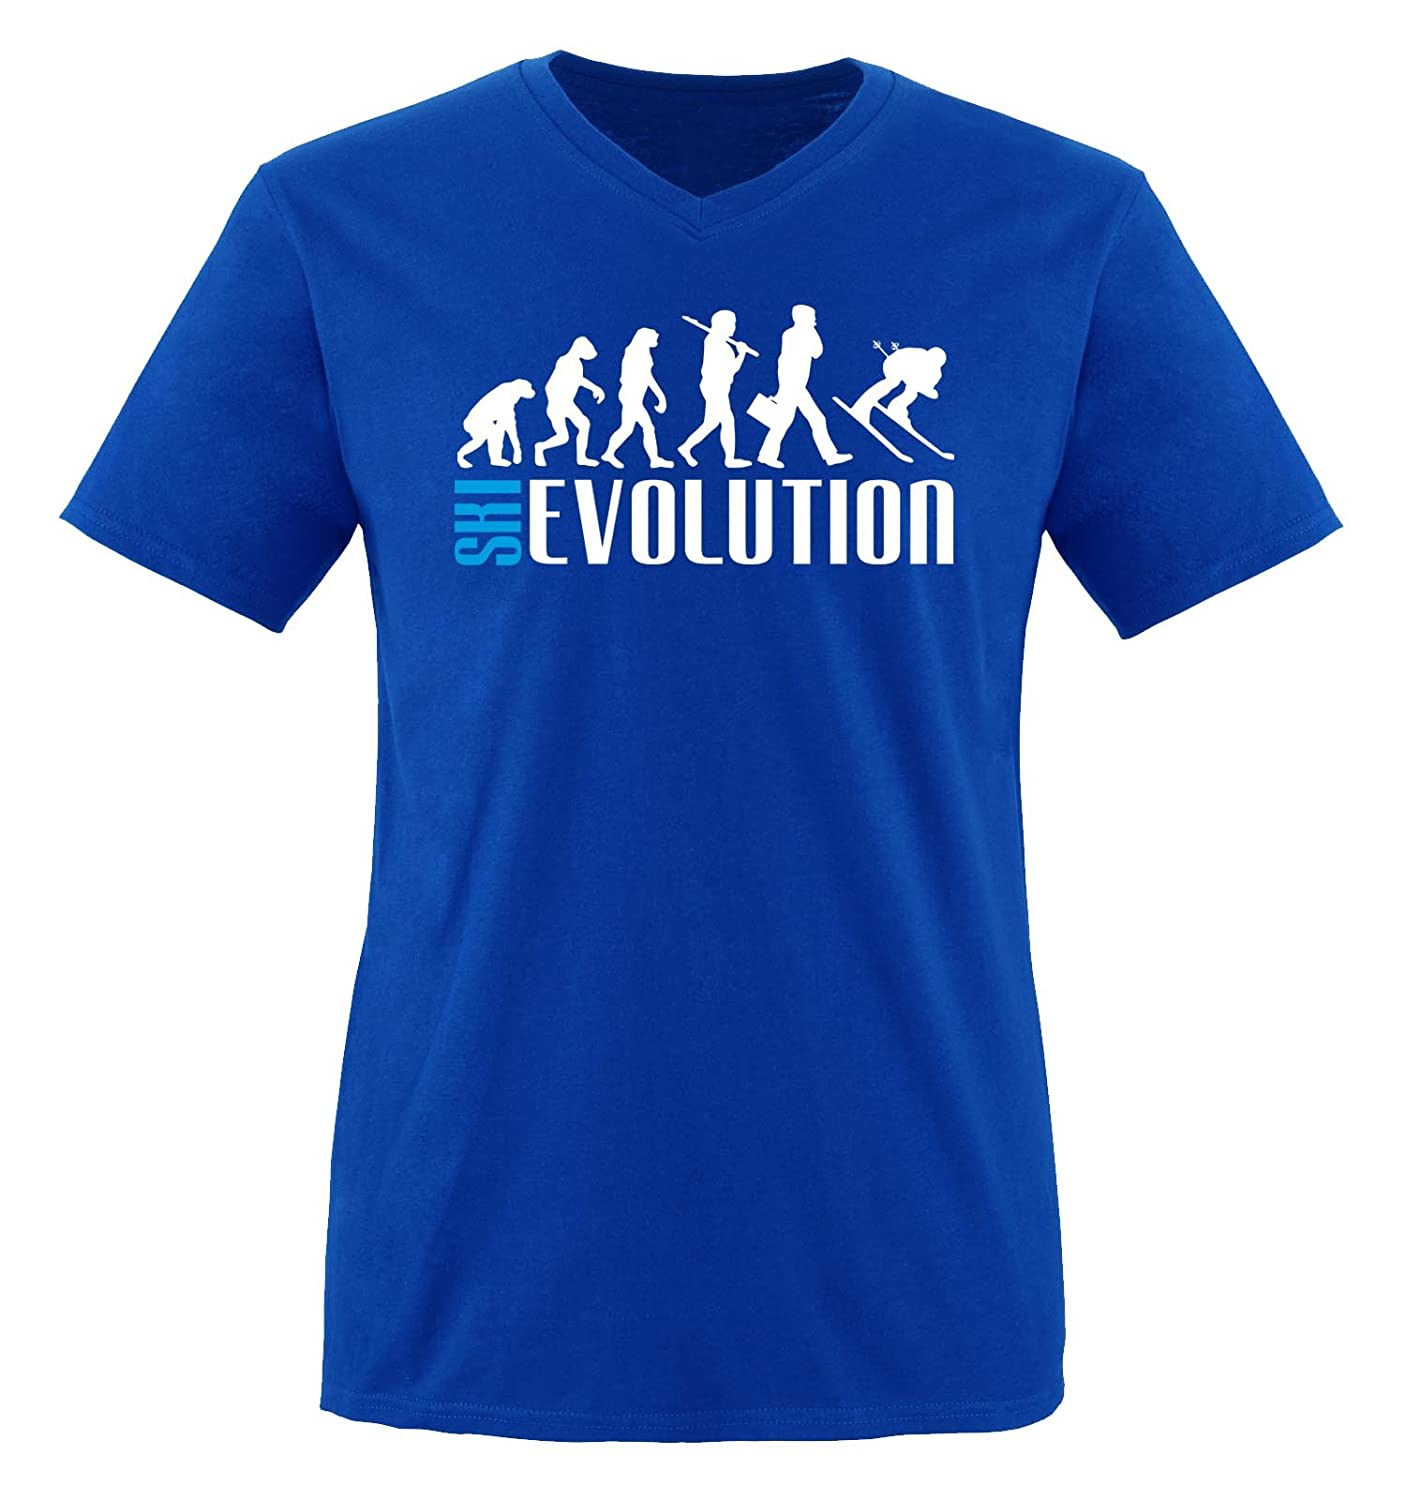 Comedy Shirts - SKI EVOLUTION - Herren V-Neck T-Shirt - Gr. S-XXL Versch. Farben